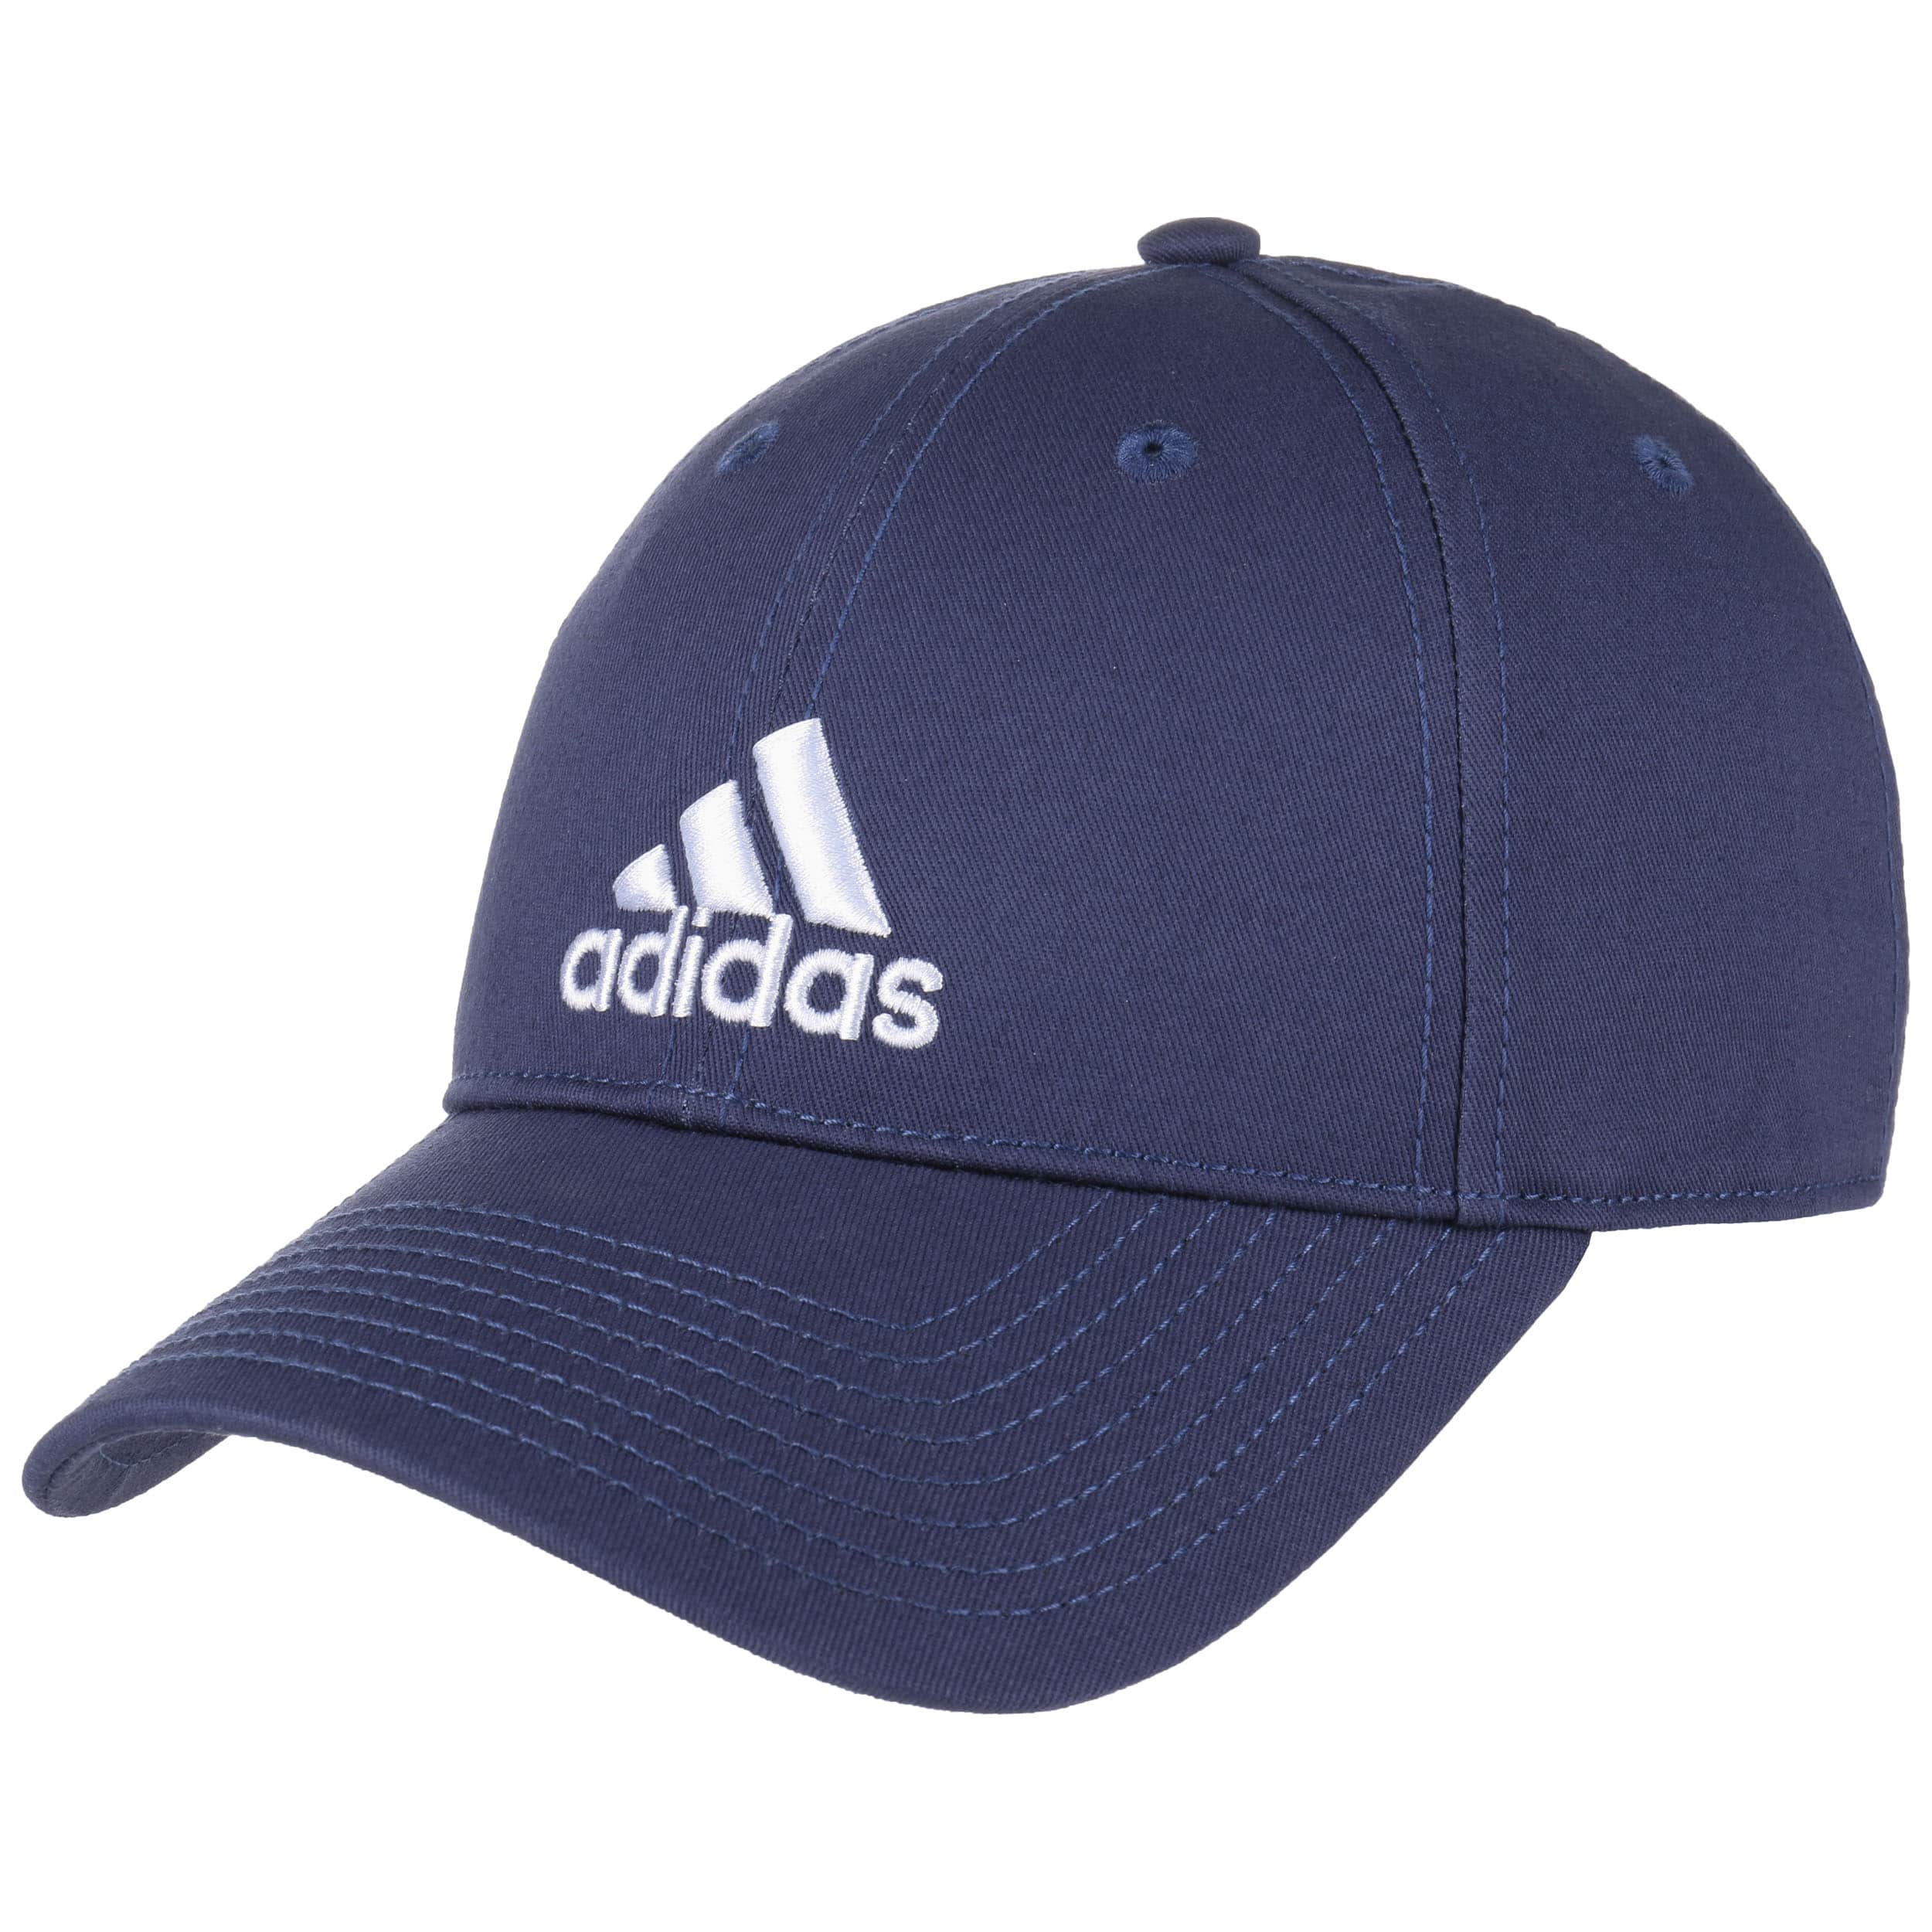 ... 6P Classic Cotton Snapback Cap by adidas - navy 5 ... cddac15e0f7